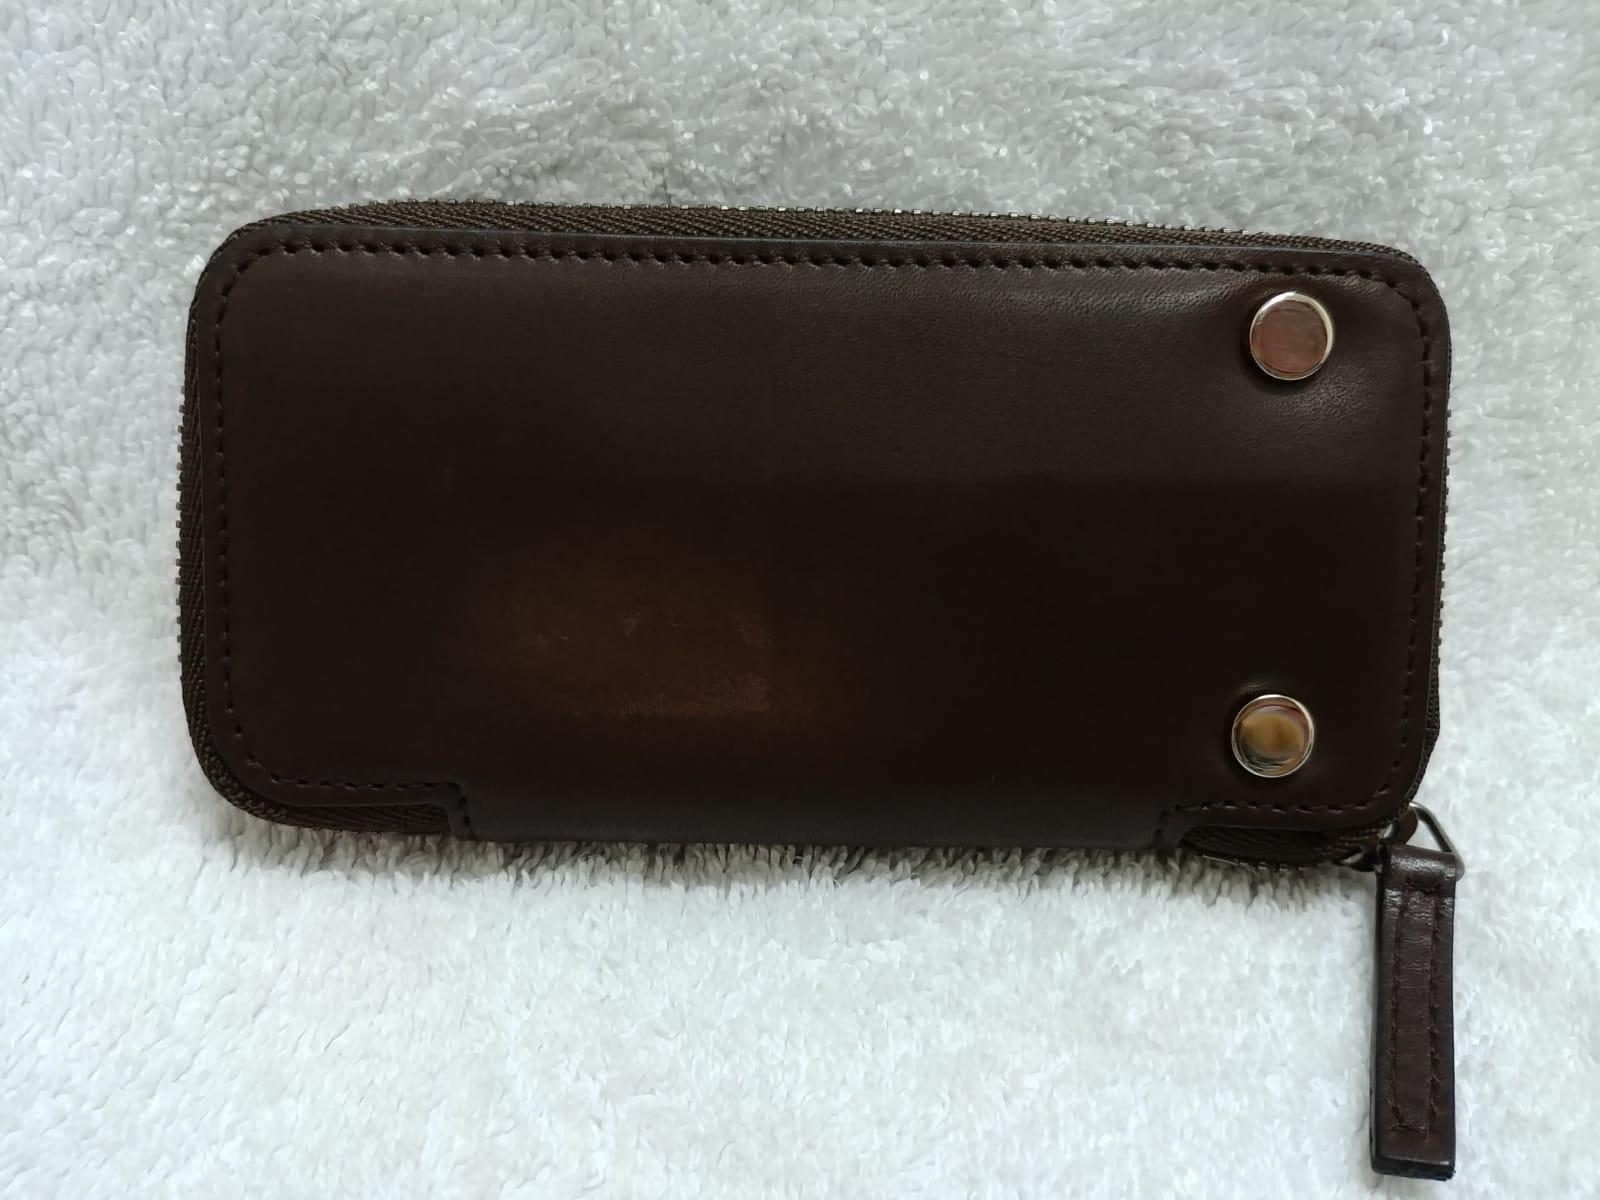 Extremely Cheap Luxurious Genunine Leather Goods